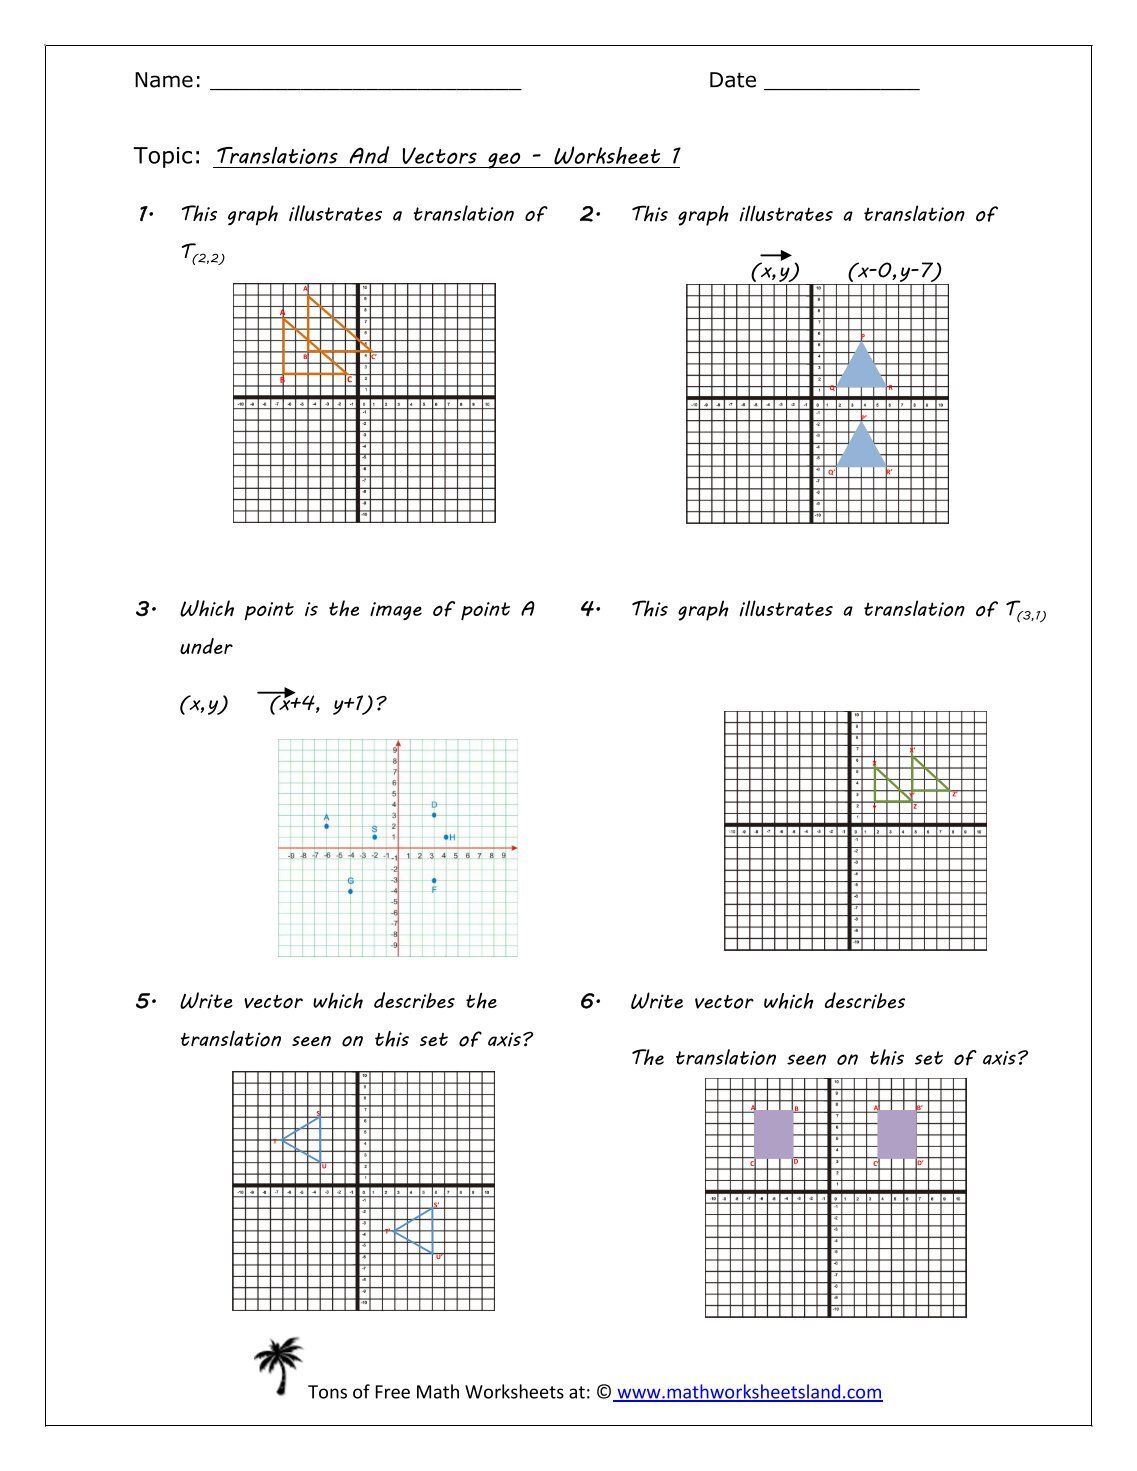 worksheet Translations Math Worksheets worksheet translation vectors thedanks for math worksheets all download and share math